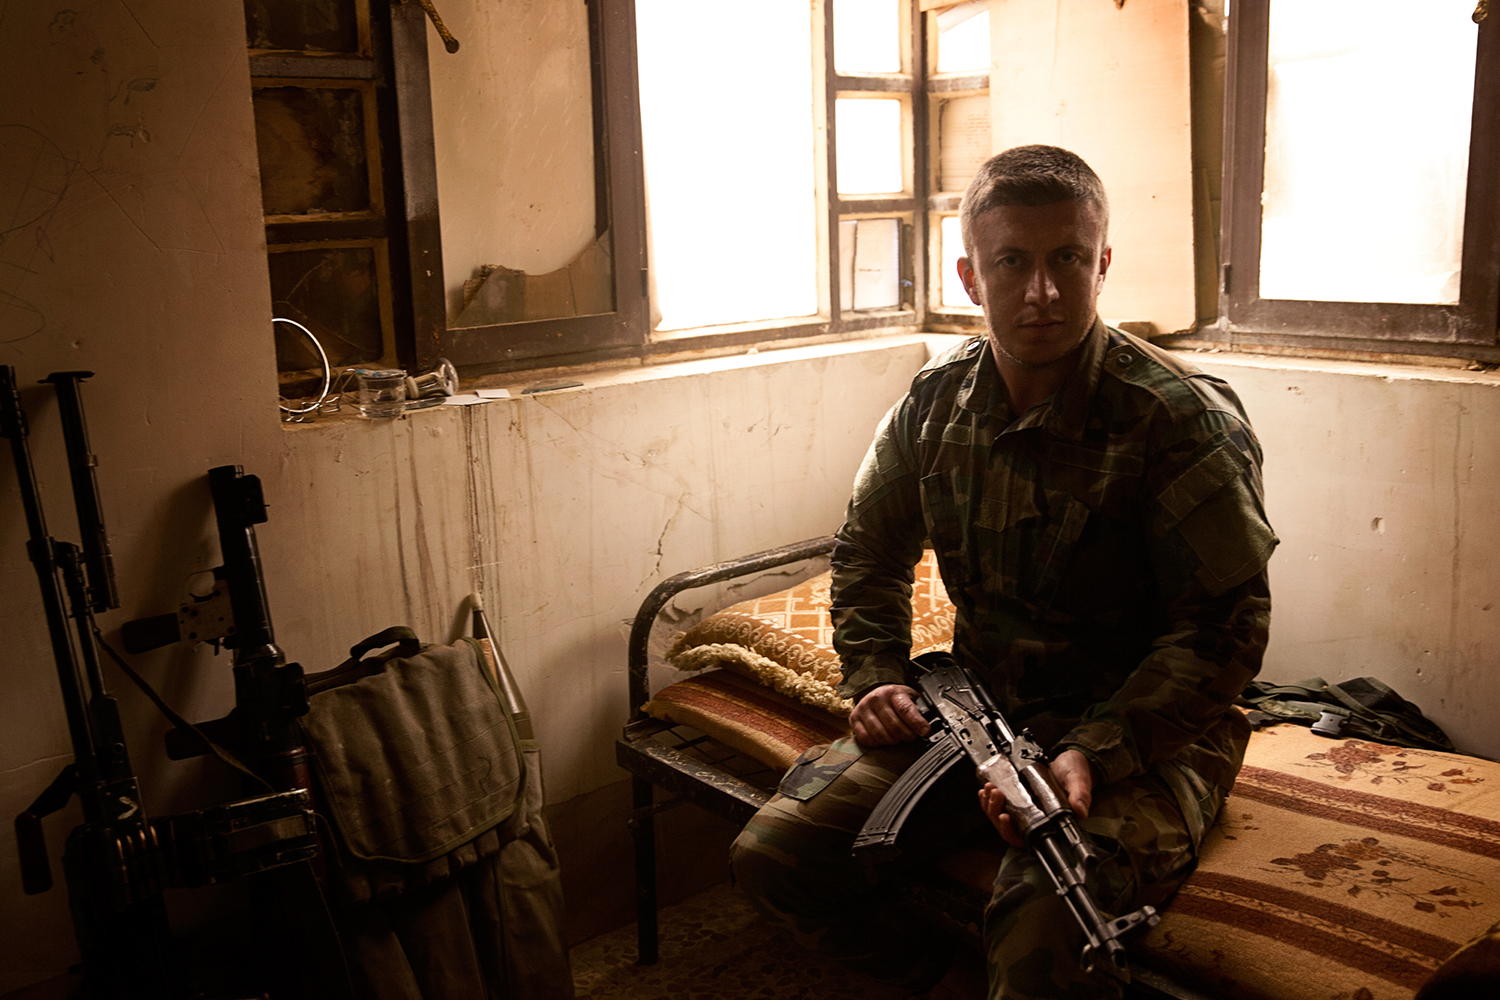 A kurdish Peshmerga Soldier on his bed